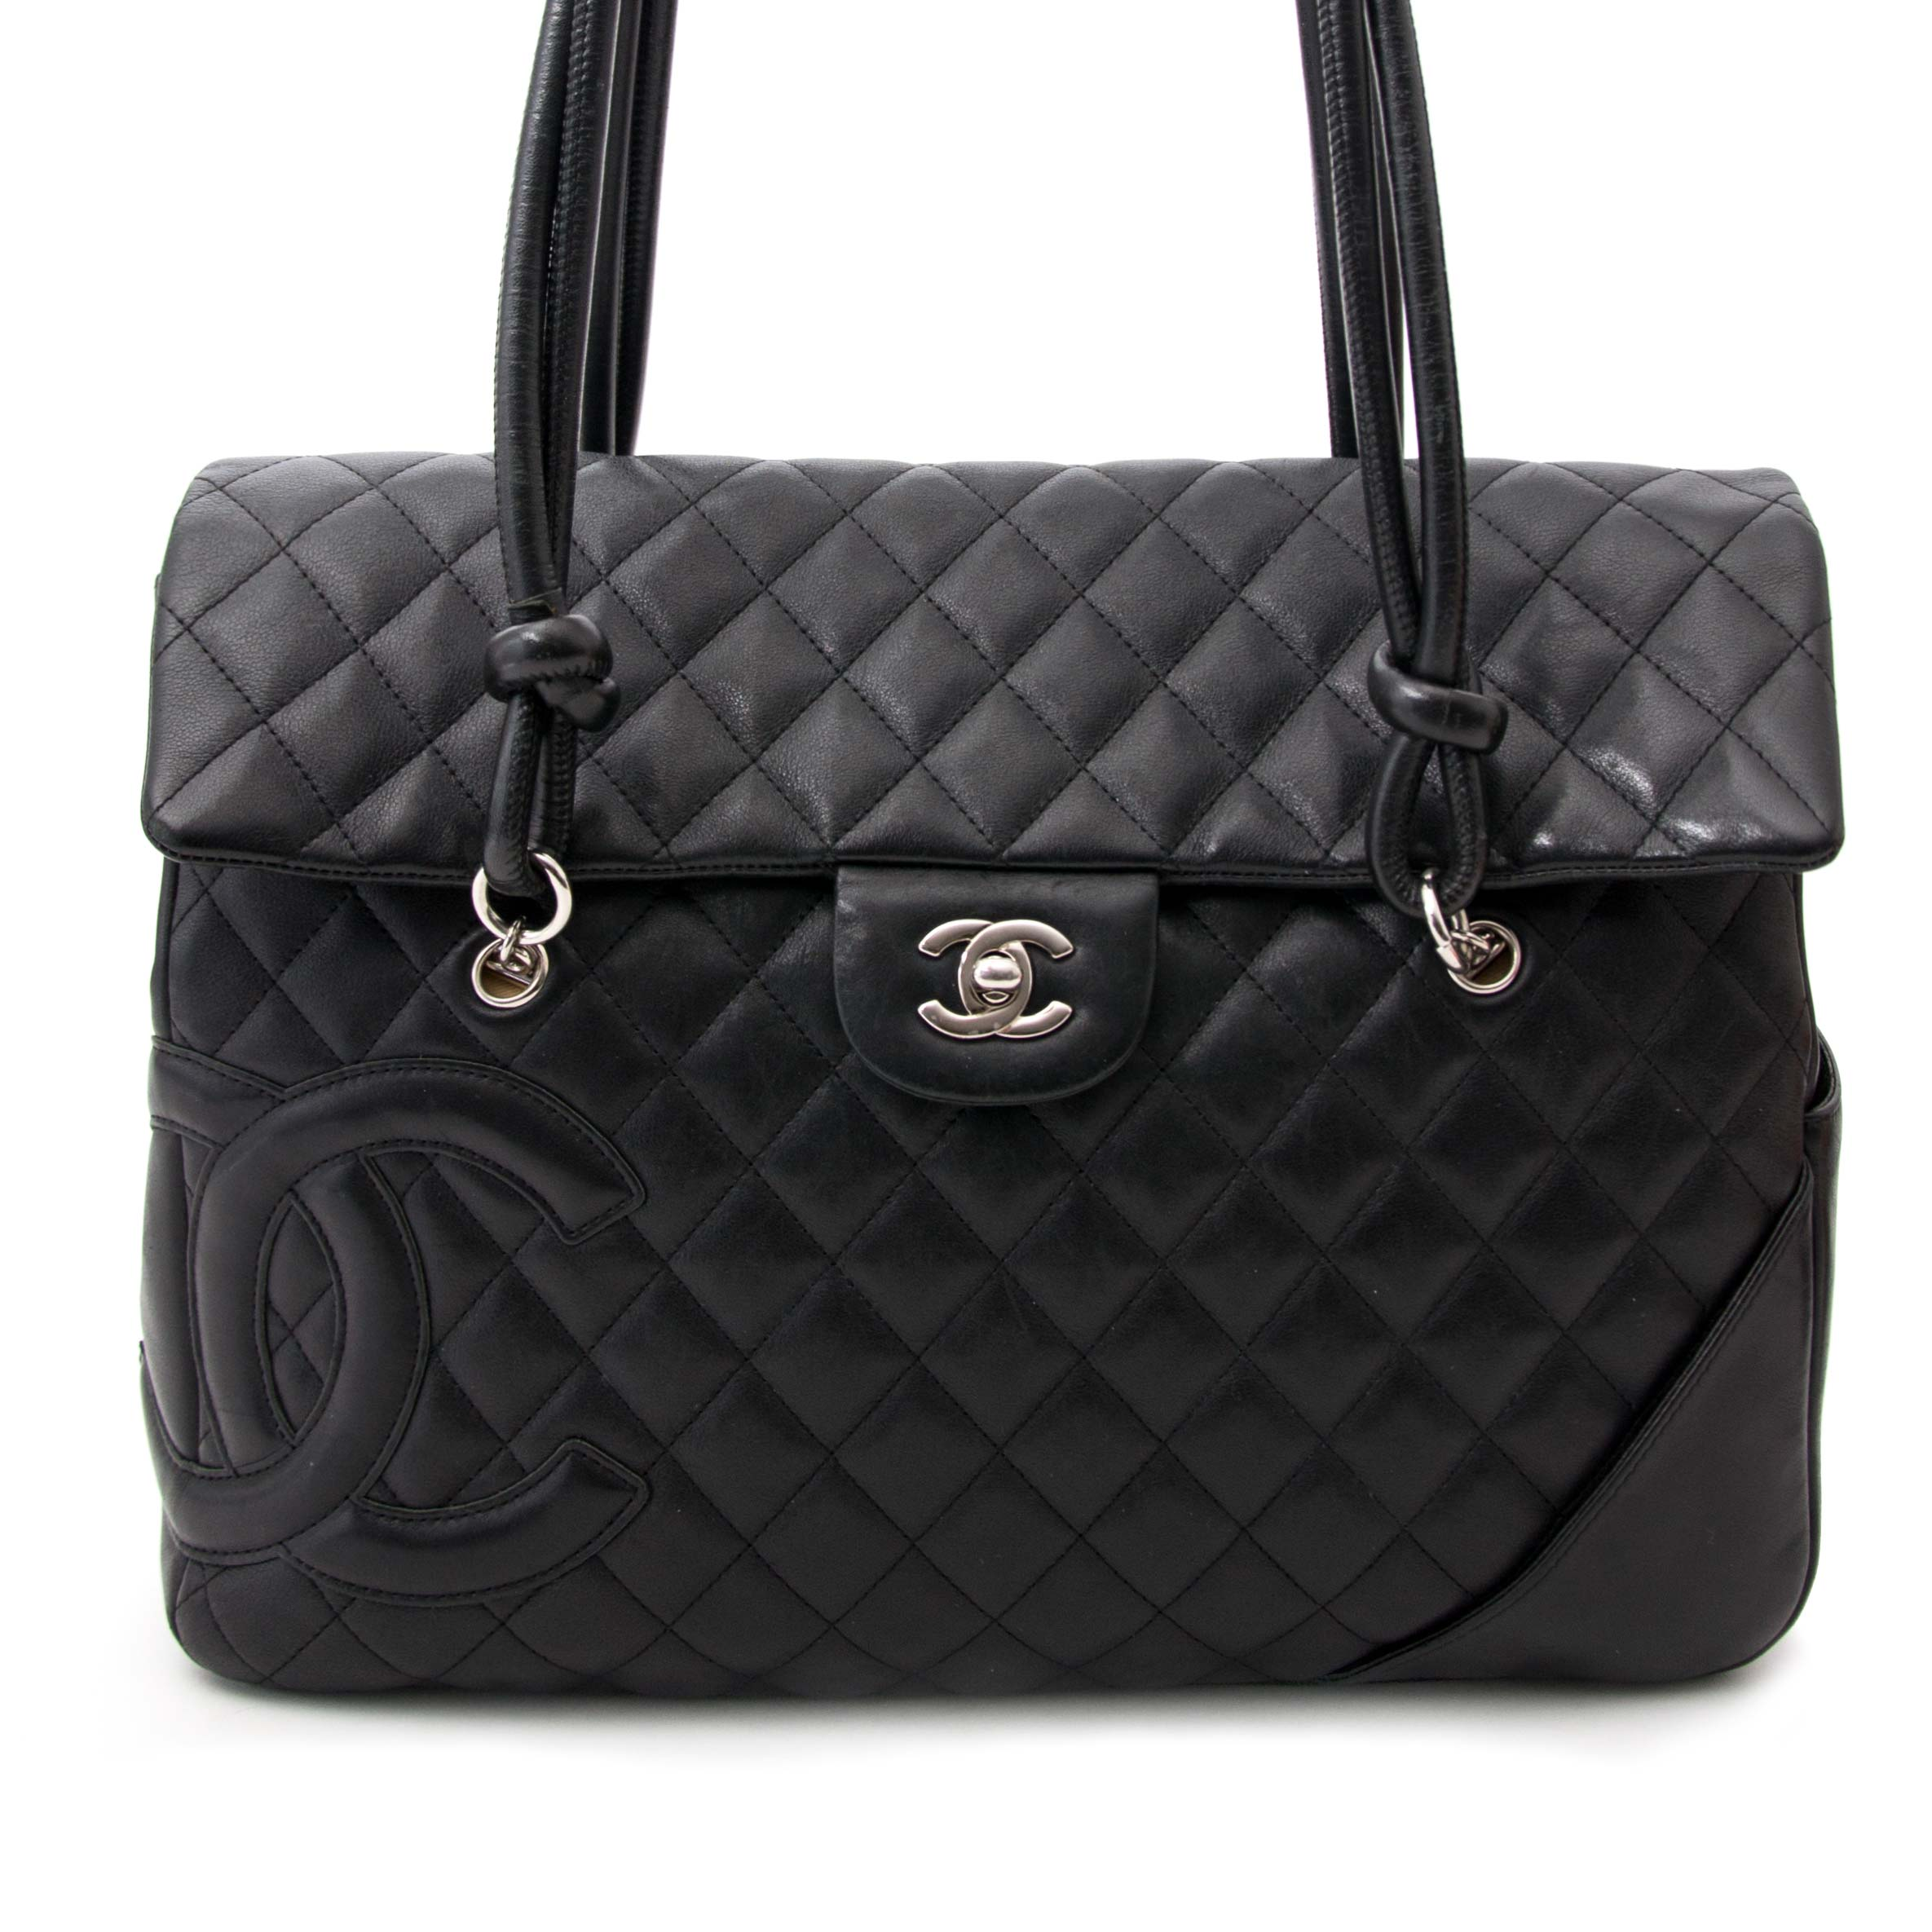 buy safe and secure online at labellov.com for the best price chanel black shopping tote